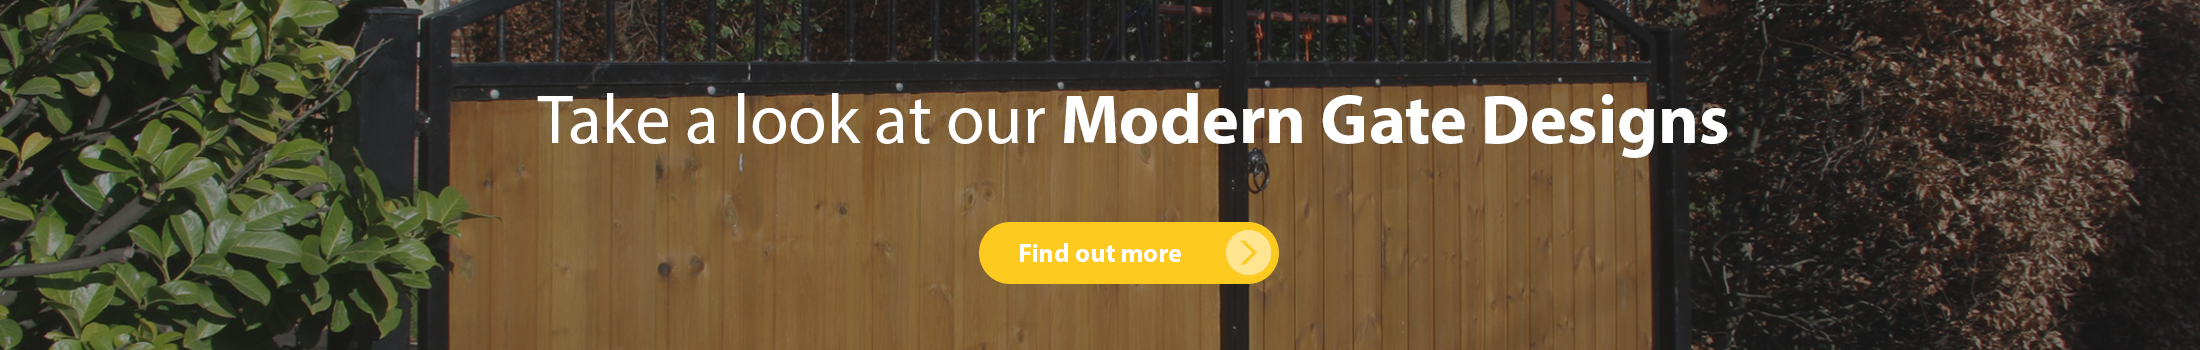 Take a look at our modern garden gate designs